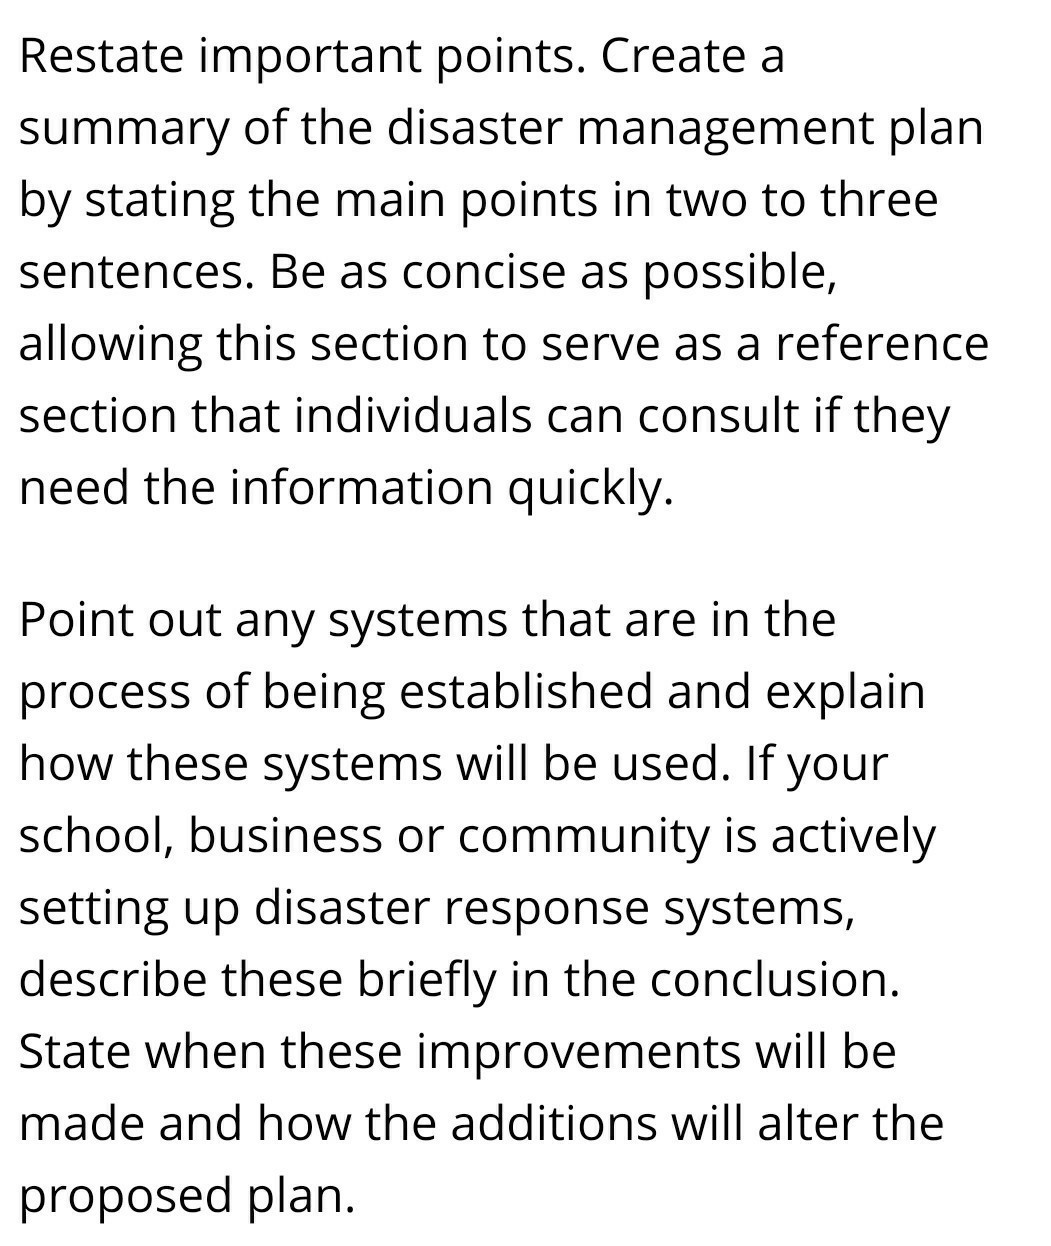 Conclusion Of Flood Disaster Management